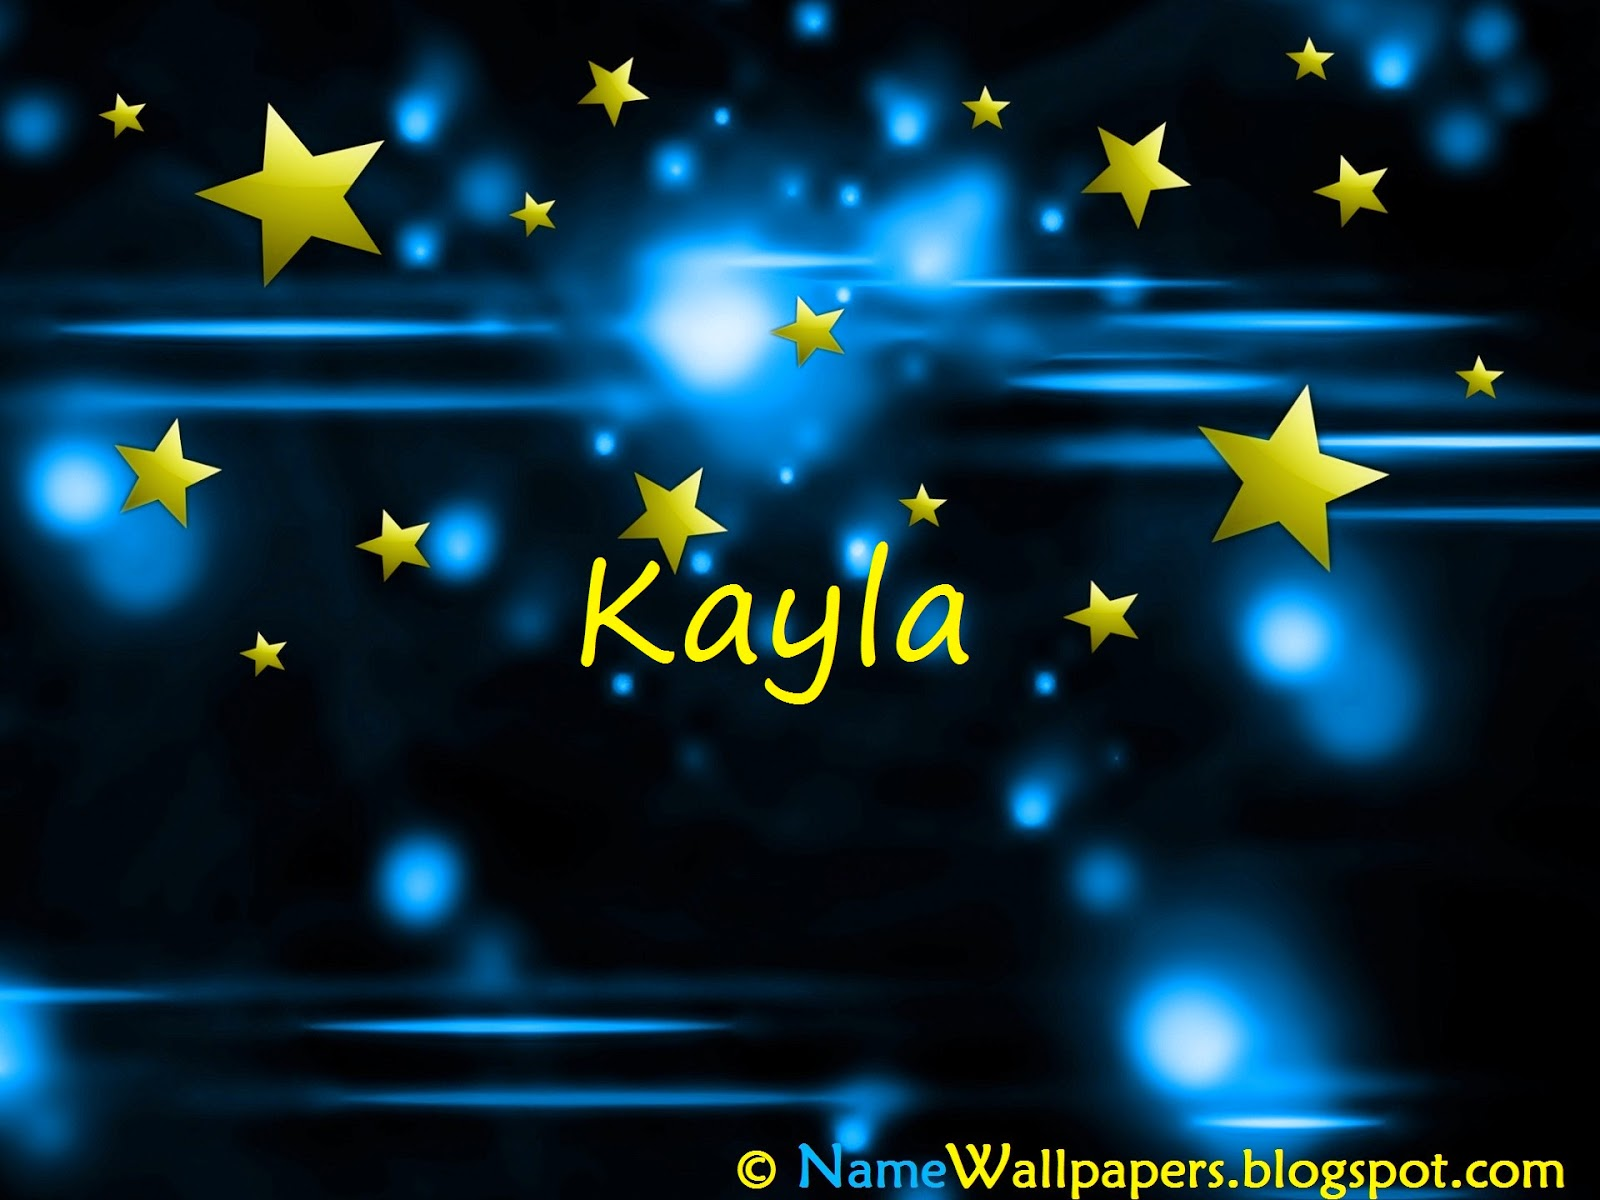 kayla name wallpapers kayla name wallpaper urdu name